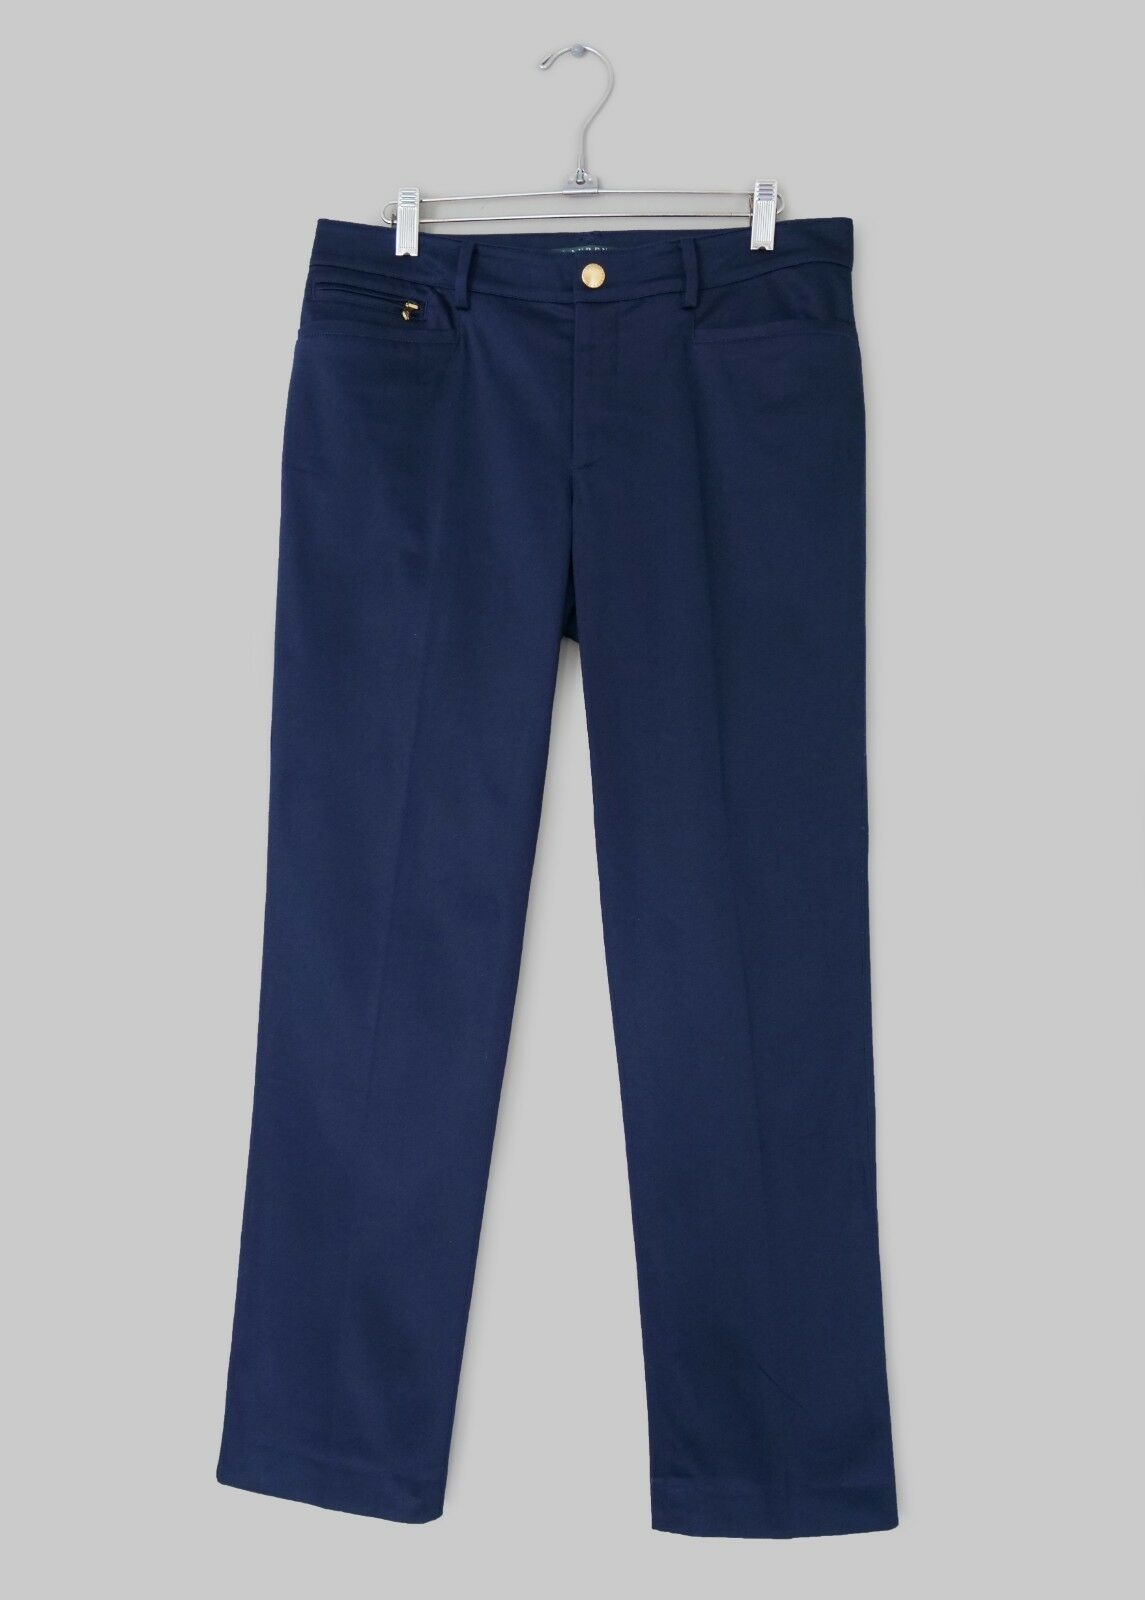 RALPH LAUREN WOMENS NAVY STRAIGHT FIT ANKLE LENGTH COTTON TROUSERS -US 6